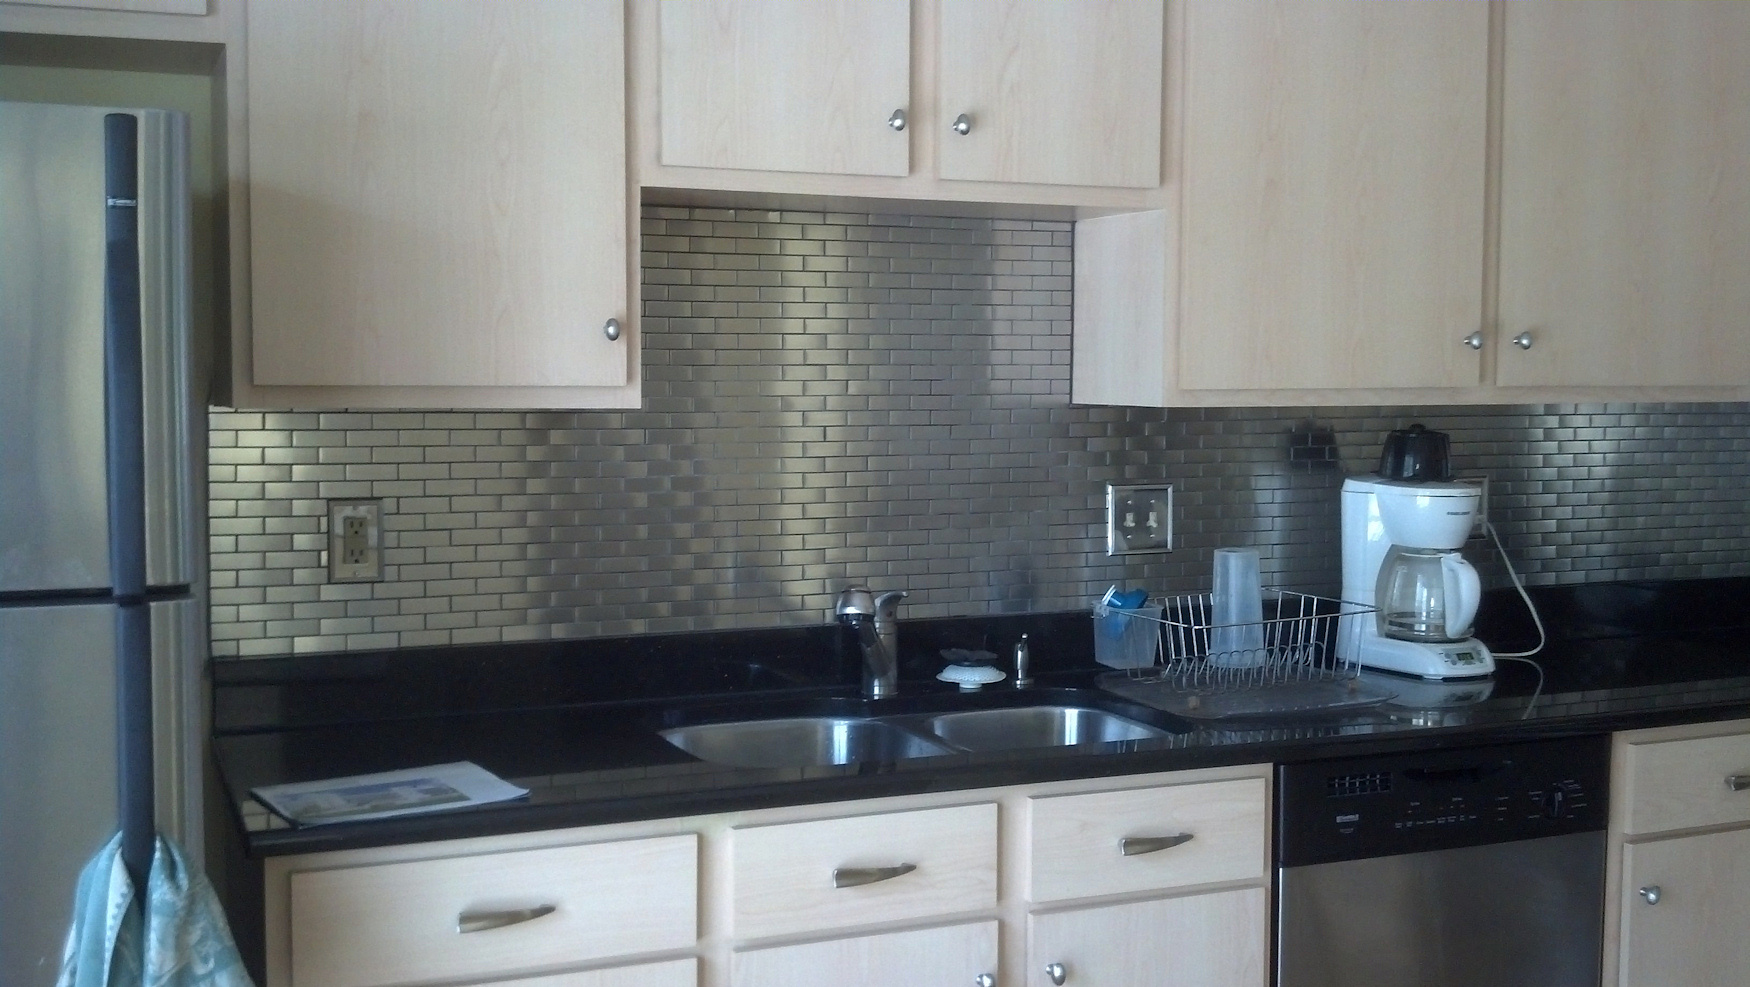 Modern ikea stainless steel backsplash homesfeed for Black kitchen backsplash ideas